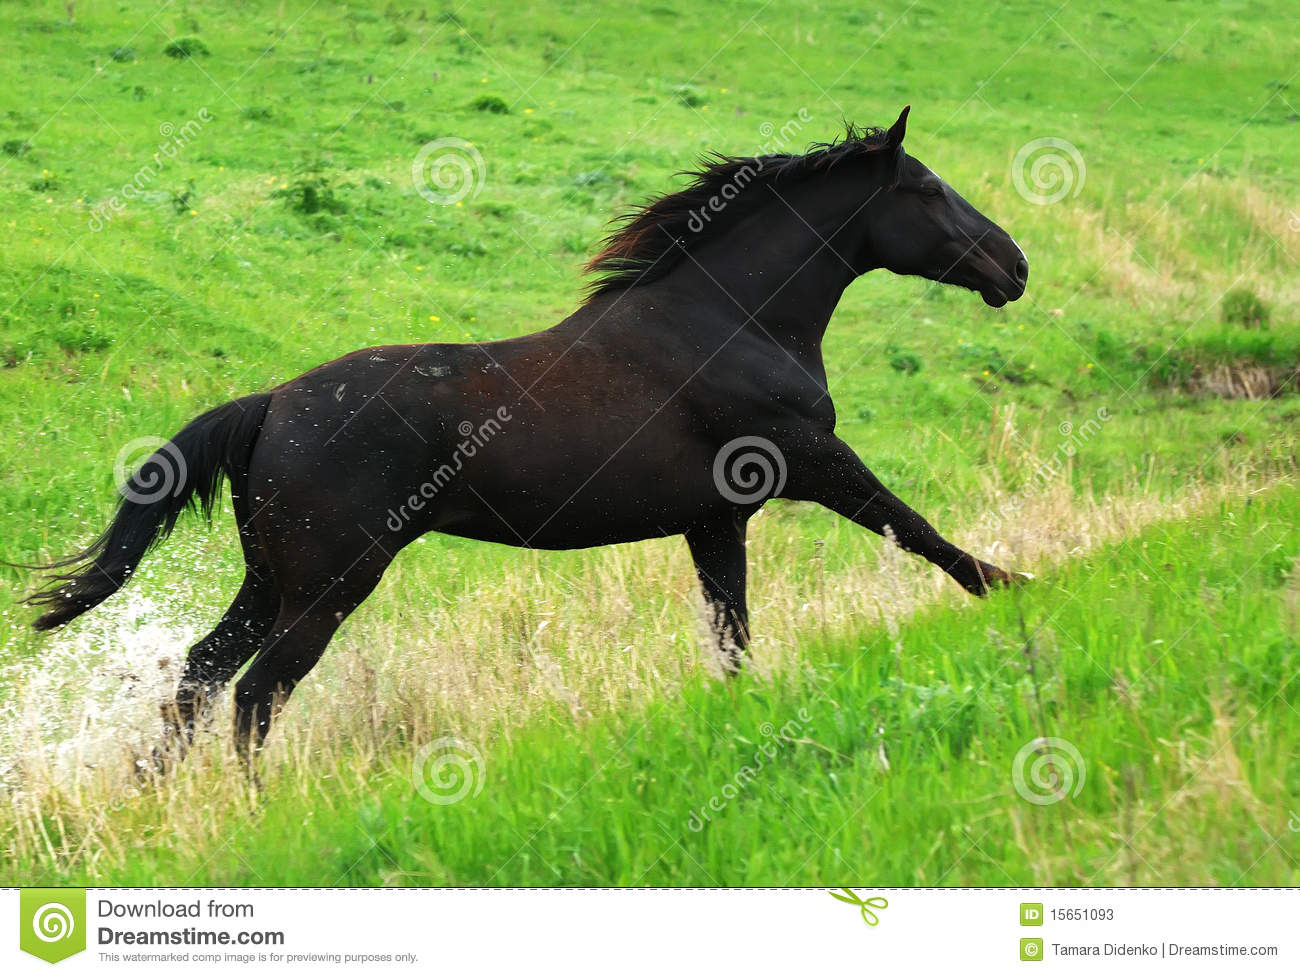 Beautiful black horse running gallop on pasture Images Of Black Horses Running